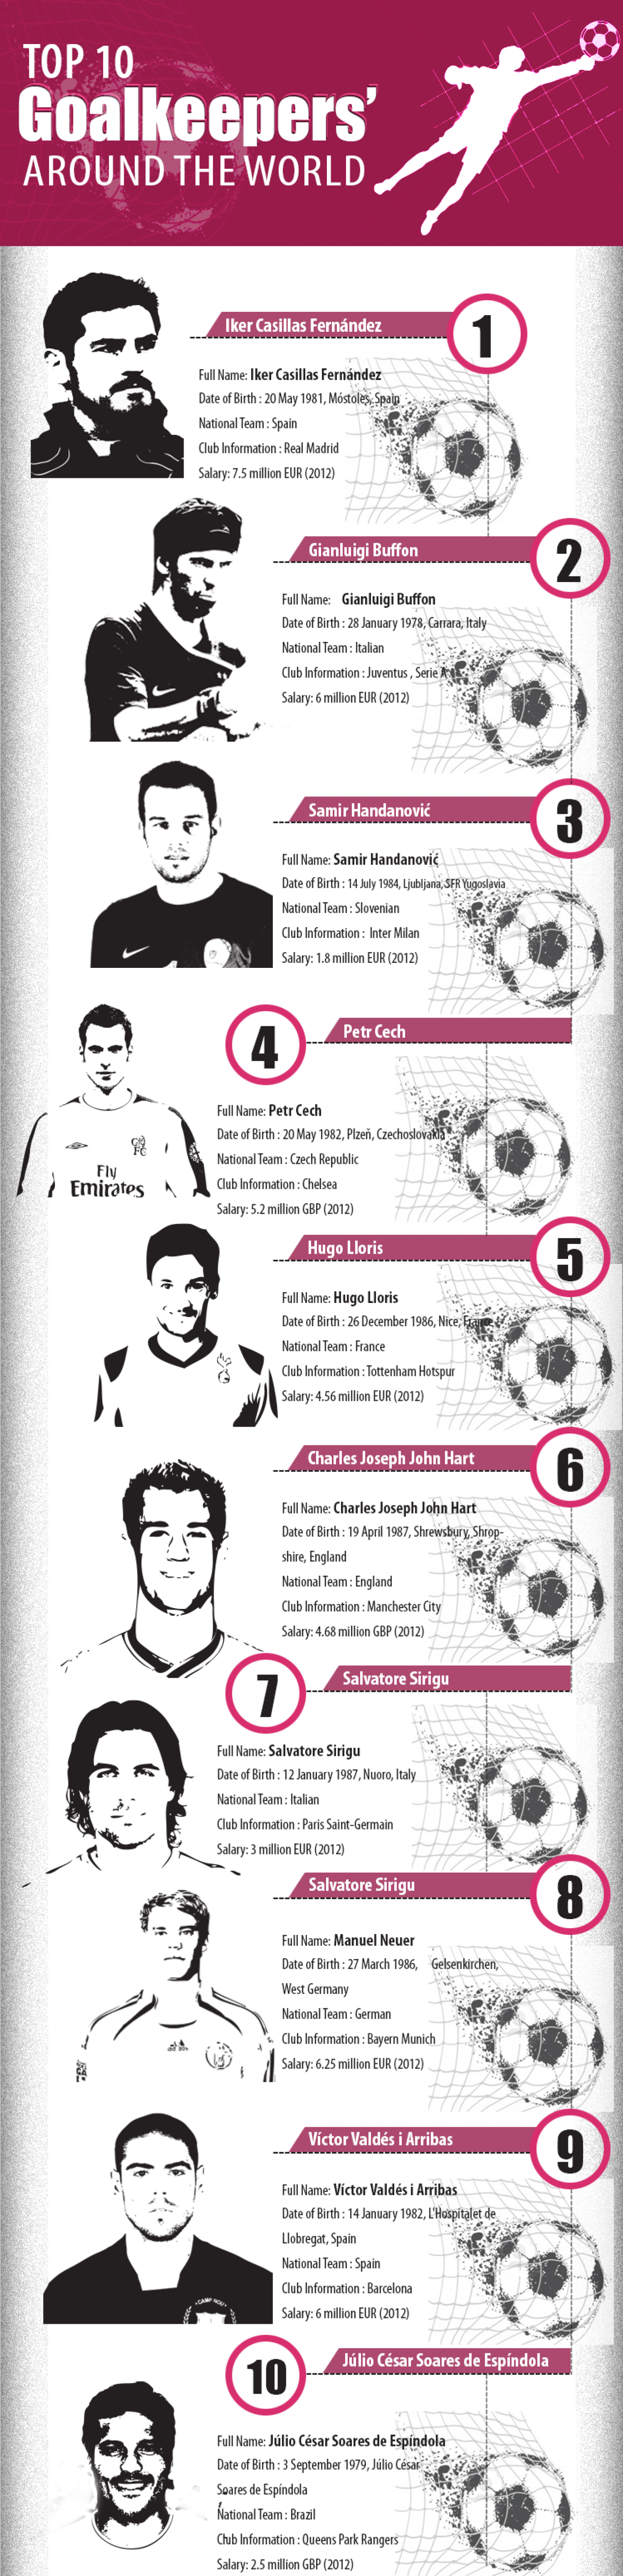 Top 10 Goalkeepers Around The World Infographic